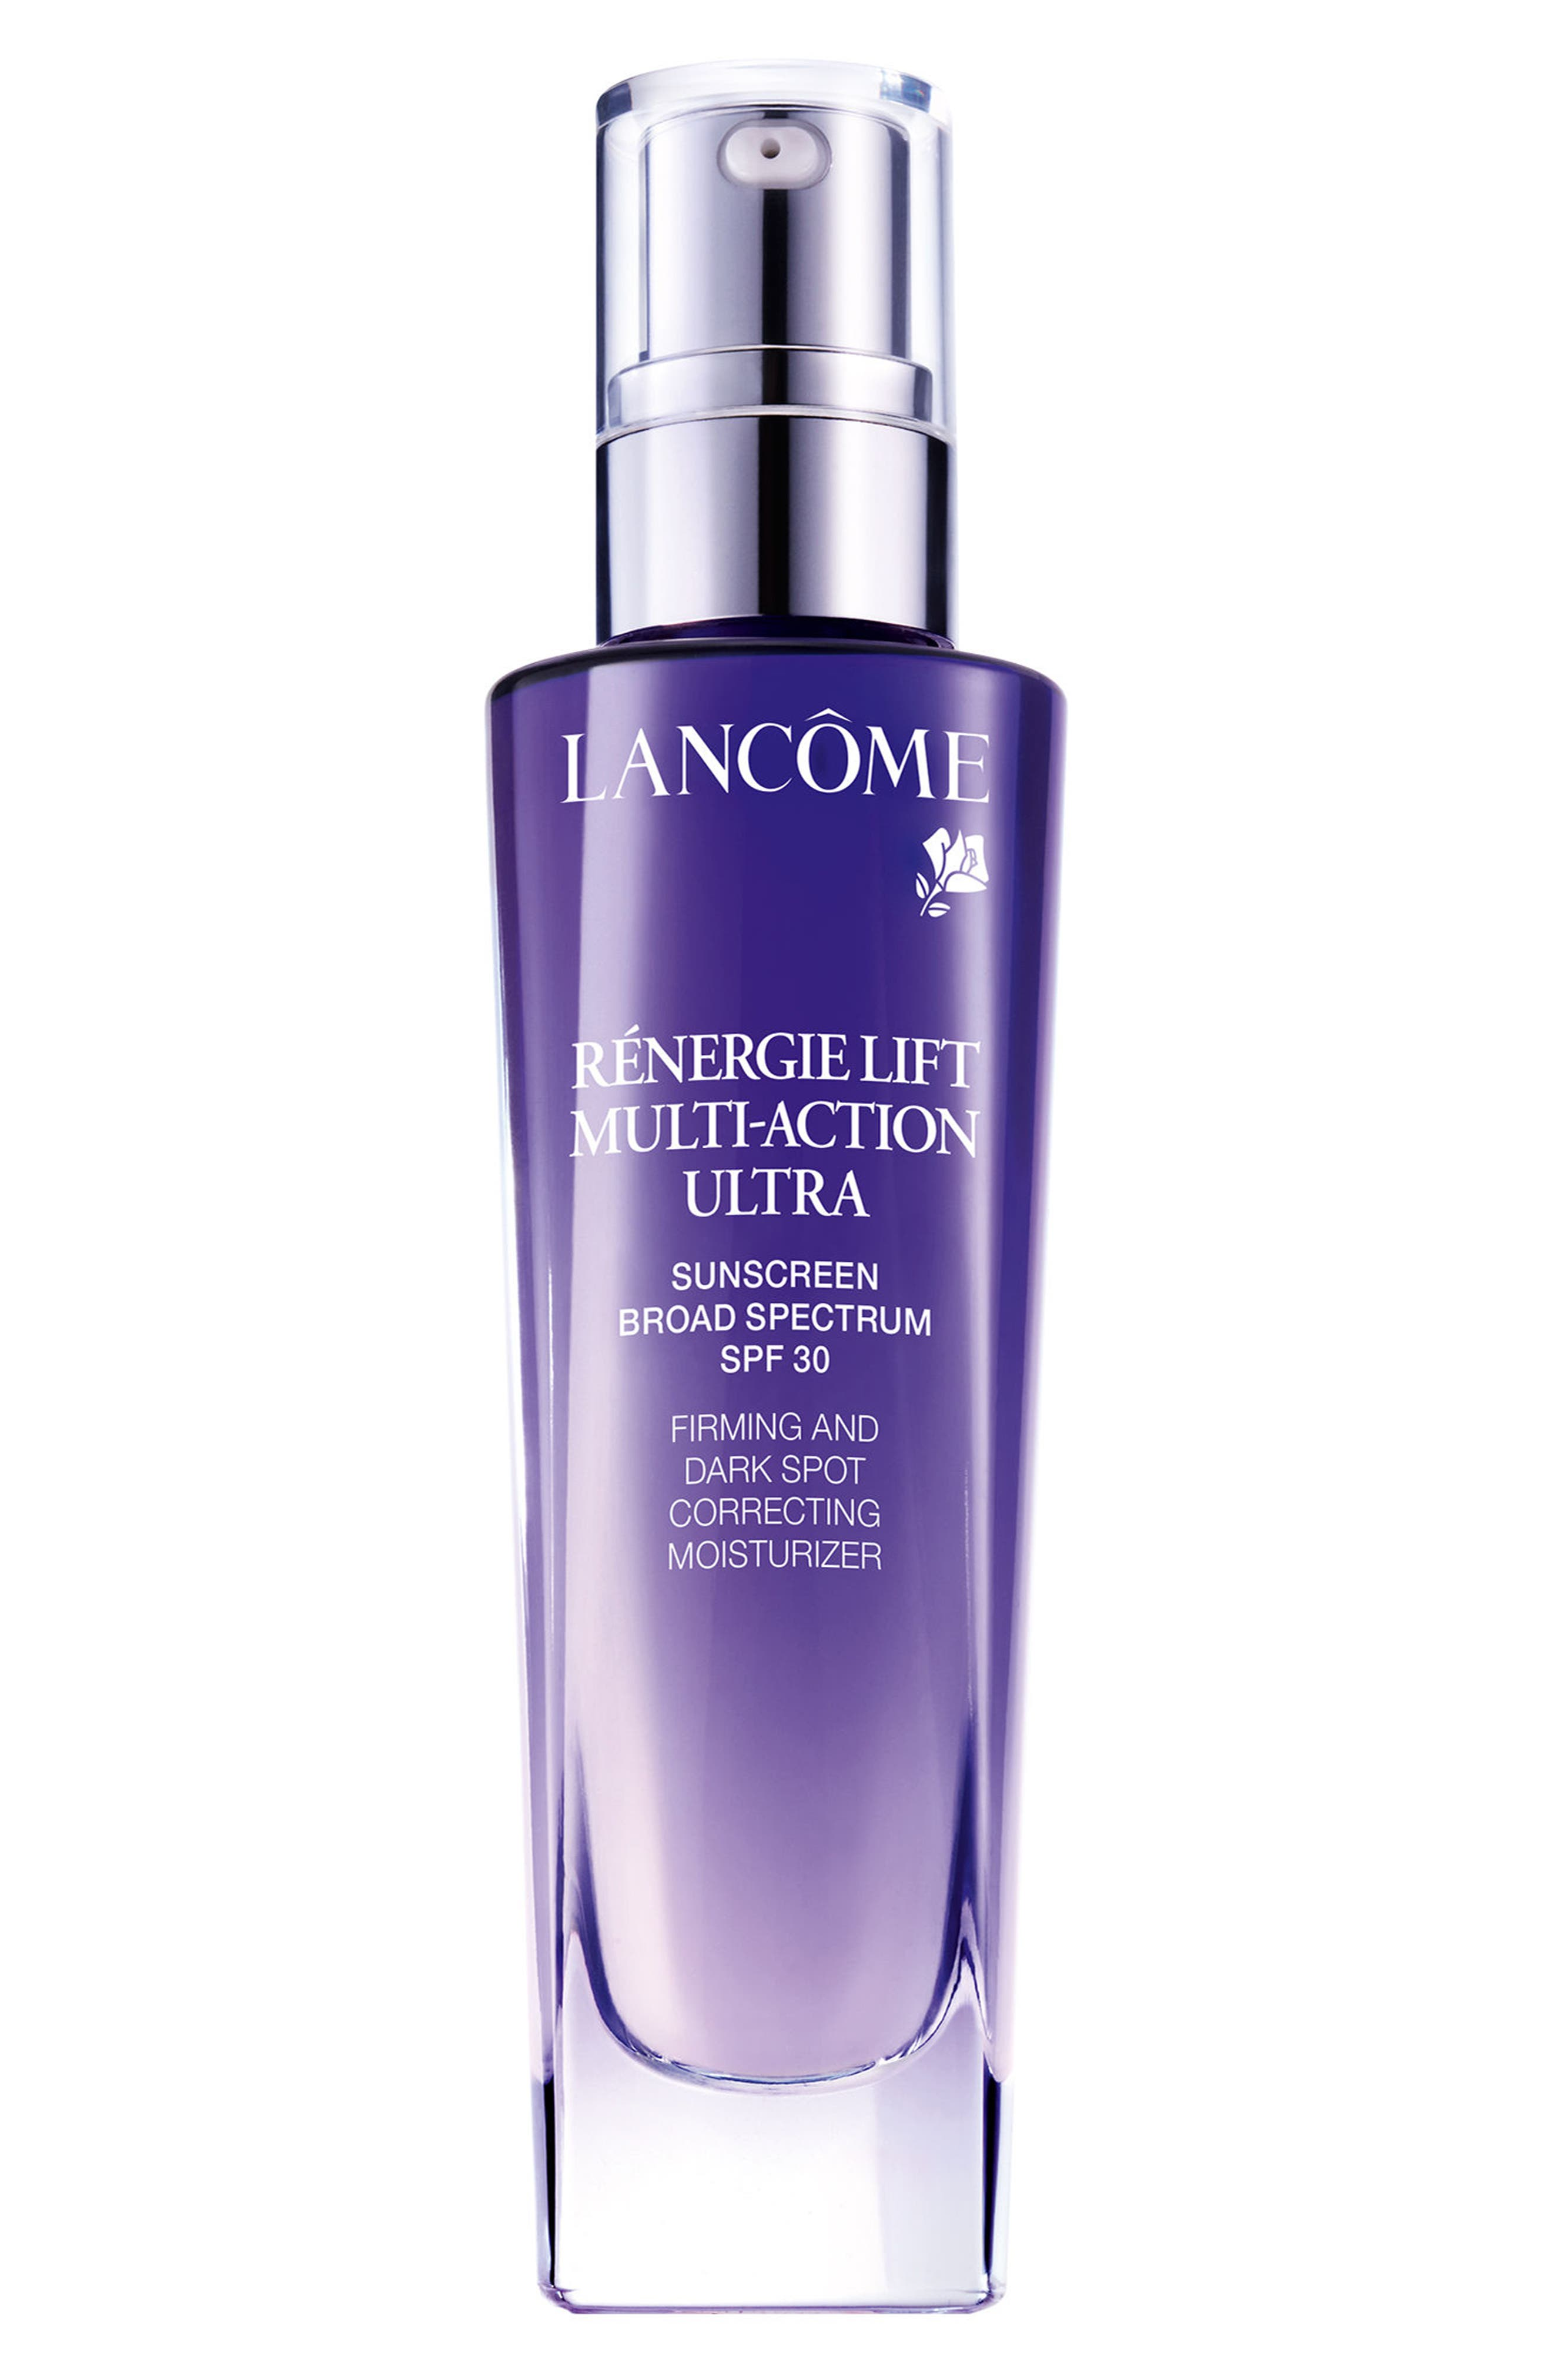 Rénergie Lift Multi-Action Ultra Firming and Dark Spot Correcting Moisturizer SPF 30,                             Main thumbnail 1, color,                             No Color